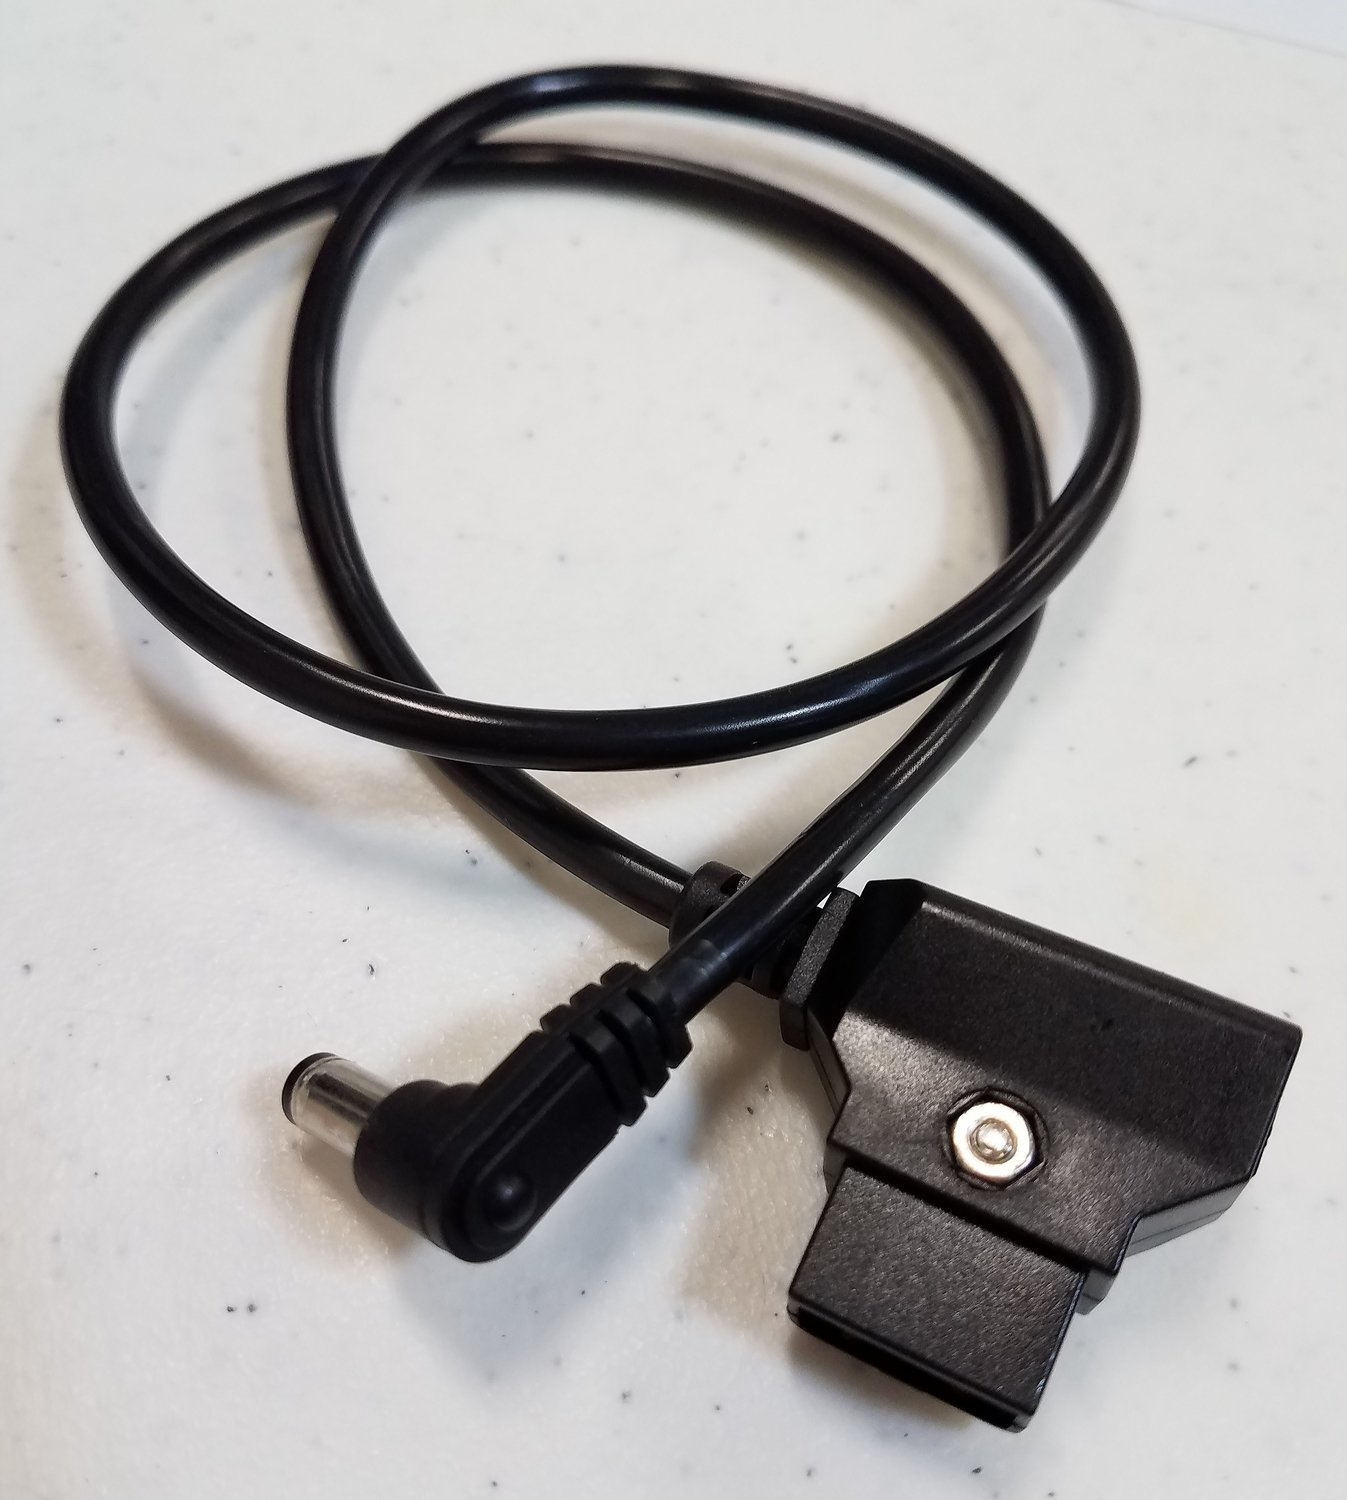 D-Tap Male to Right Angle DC 5.5x2.5mm Cable